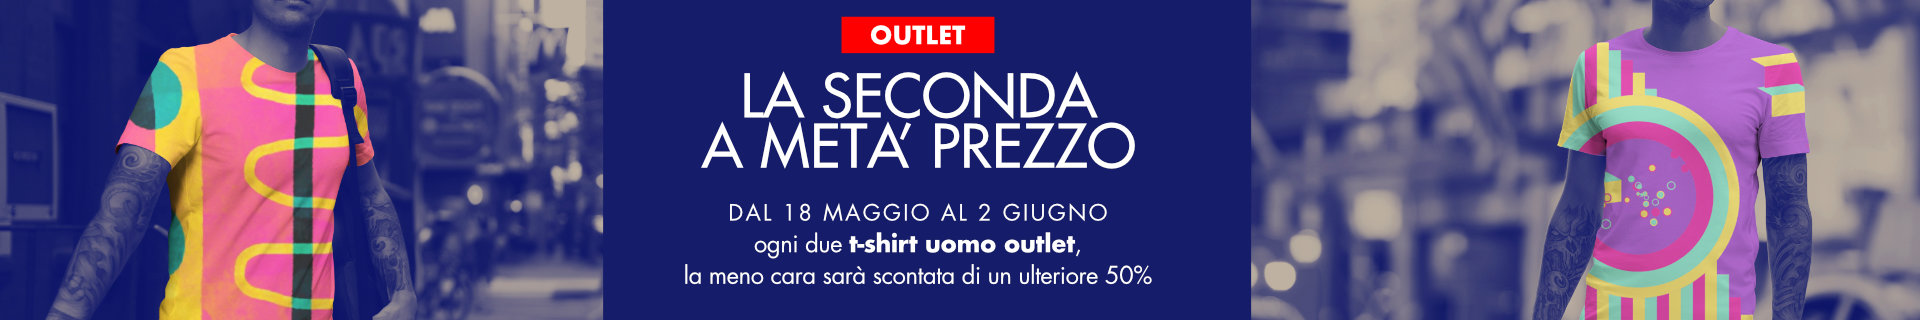 T-shirt uomo outlet in promozione